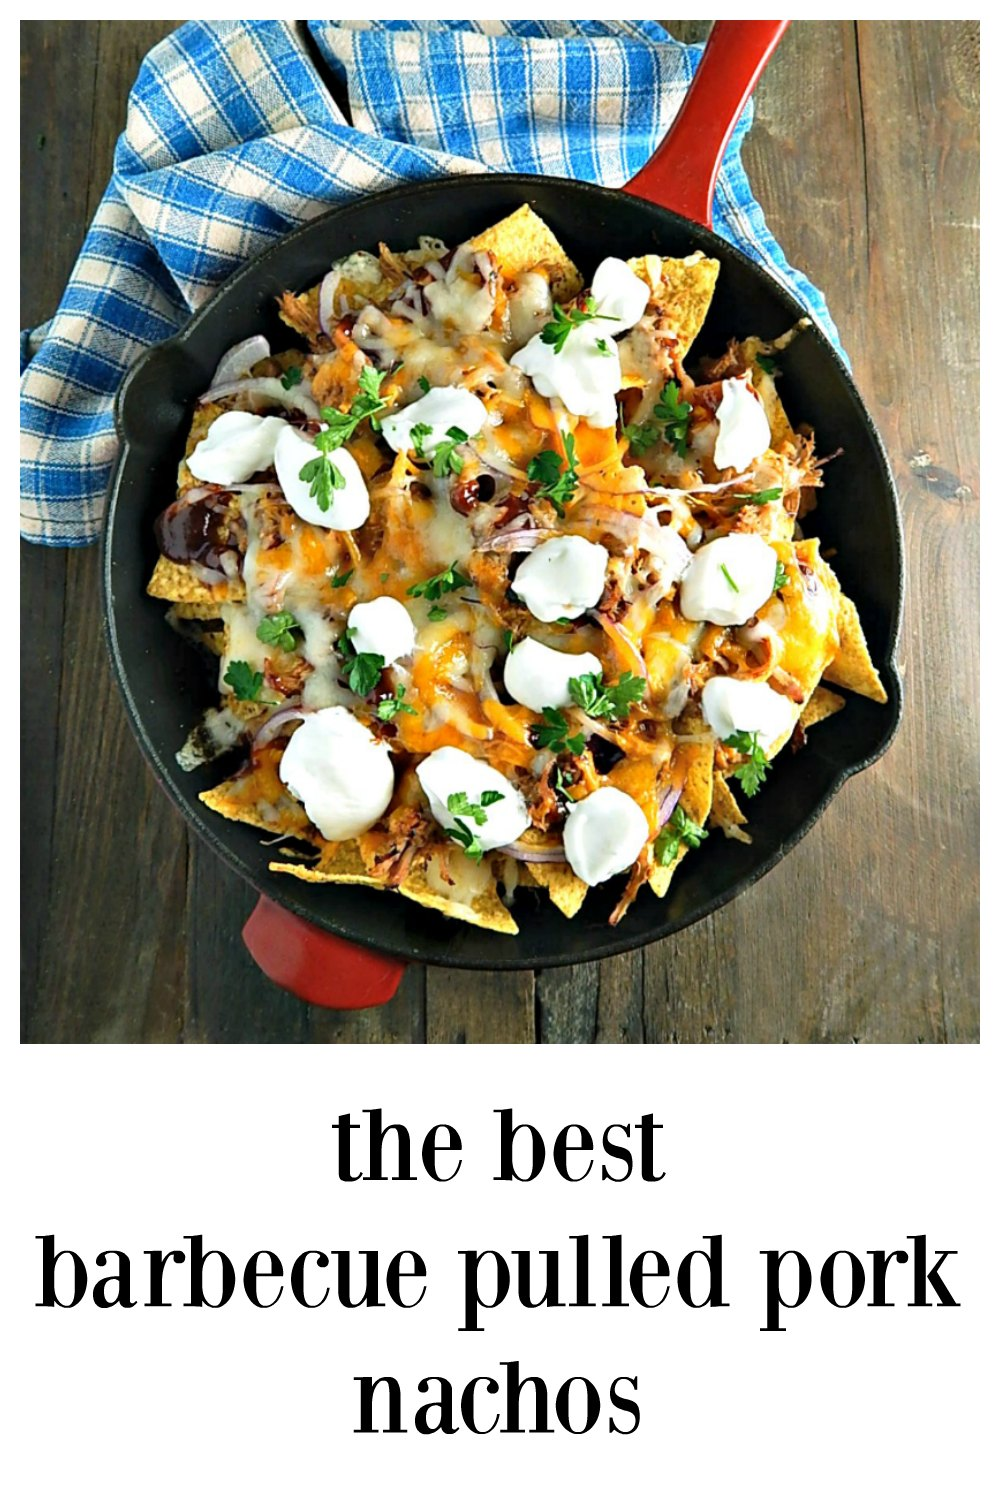 The BEST Barbecue Pulled Pork Nachos. Loaded with pulled pork, cheeses & your favorite sauce. Accented with the bite of red onion, top as you wish! Make a boatload or cut the recipe back. Pulled pork can be made in the IP or Slow Cooker. #PulledPorkNachos #BarbecueNachos #Nachos #SuperbowlNachos #GameDayNachos